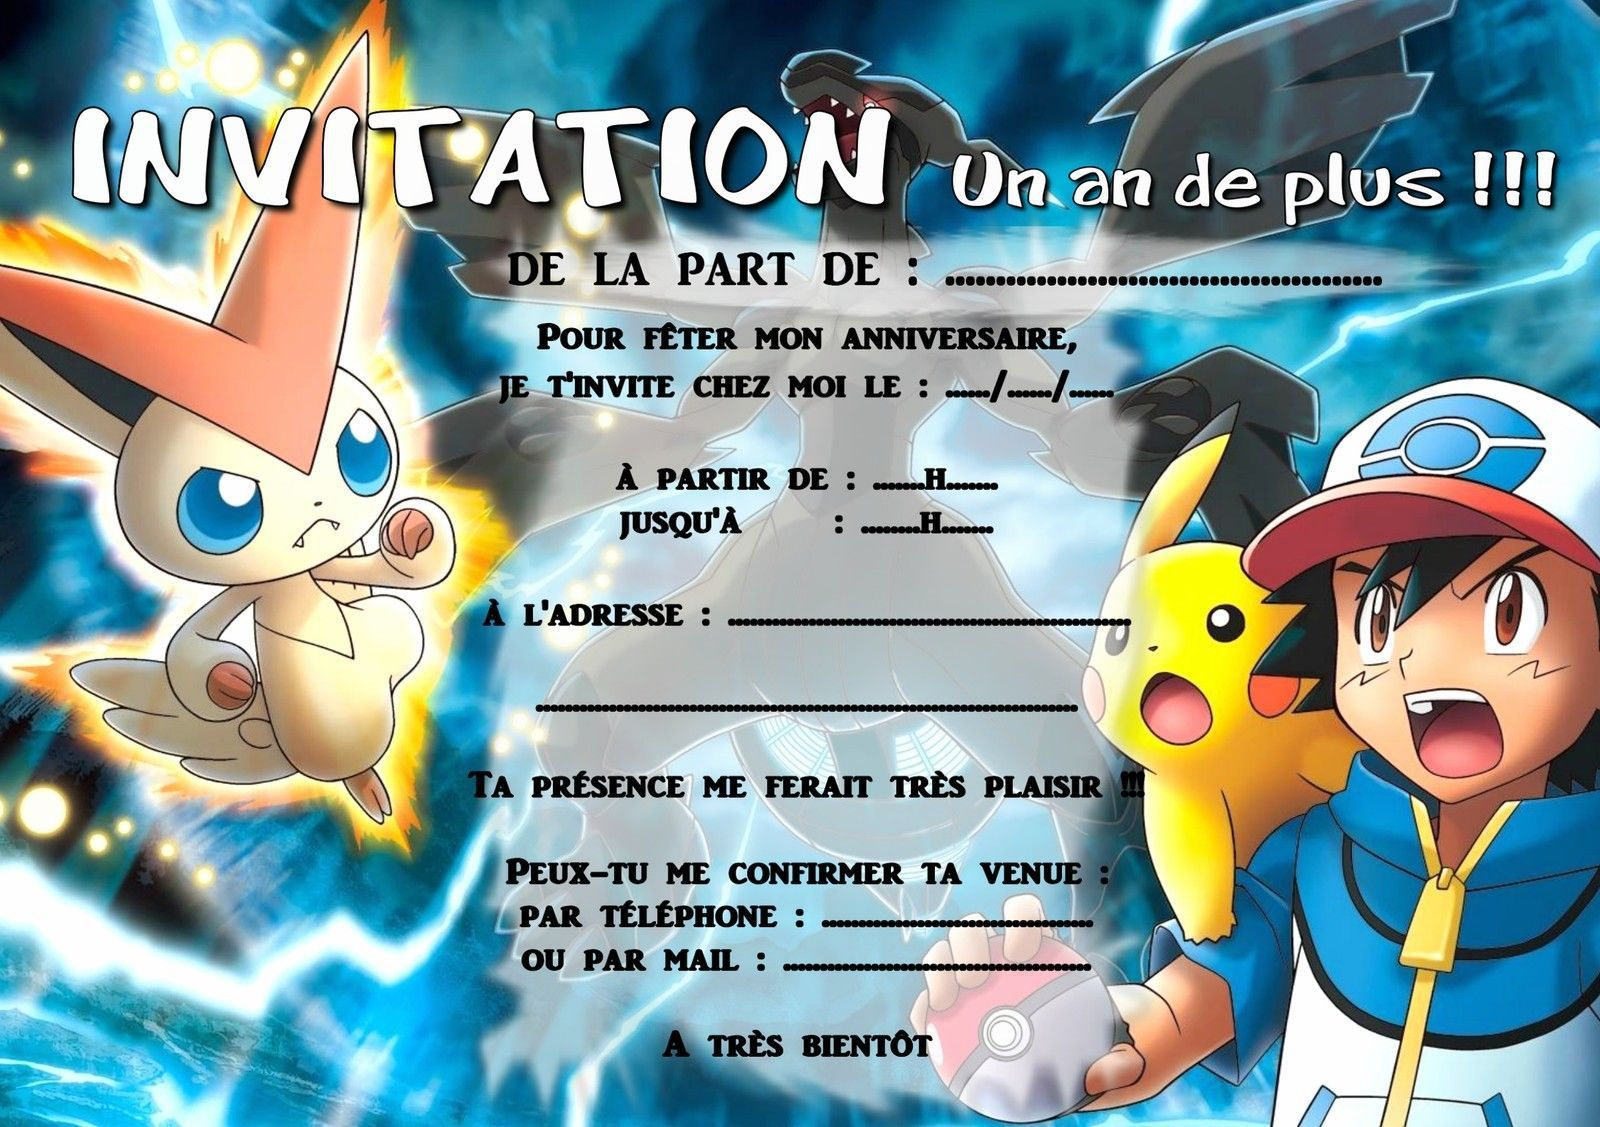 carte invitation anniversaire pokemon imprimer gratuite invitation anniversaire anniv. Black Bedroom Furniture Sets. Home Design Ideas